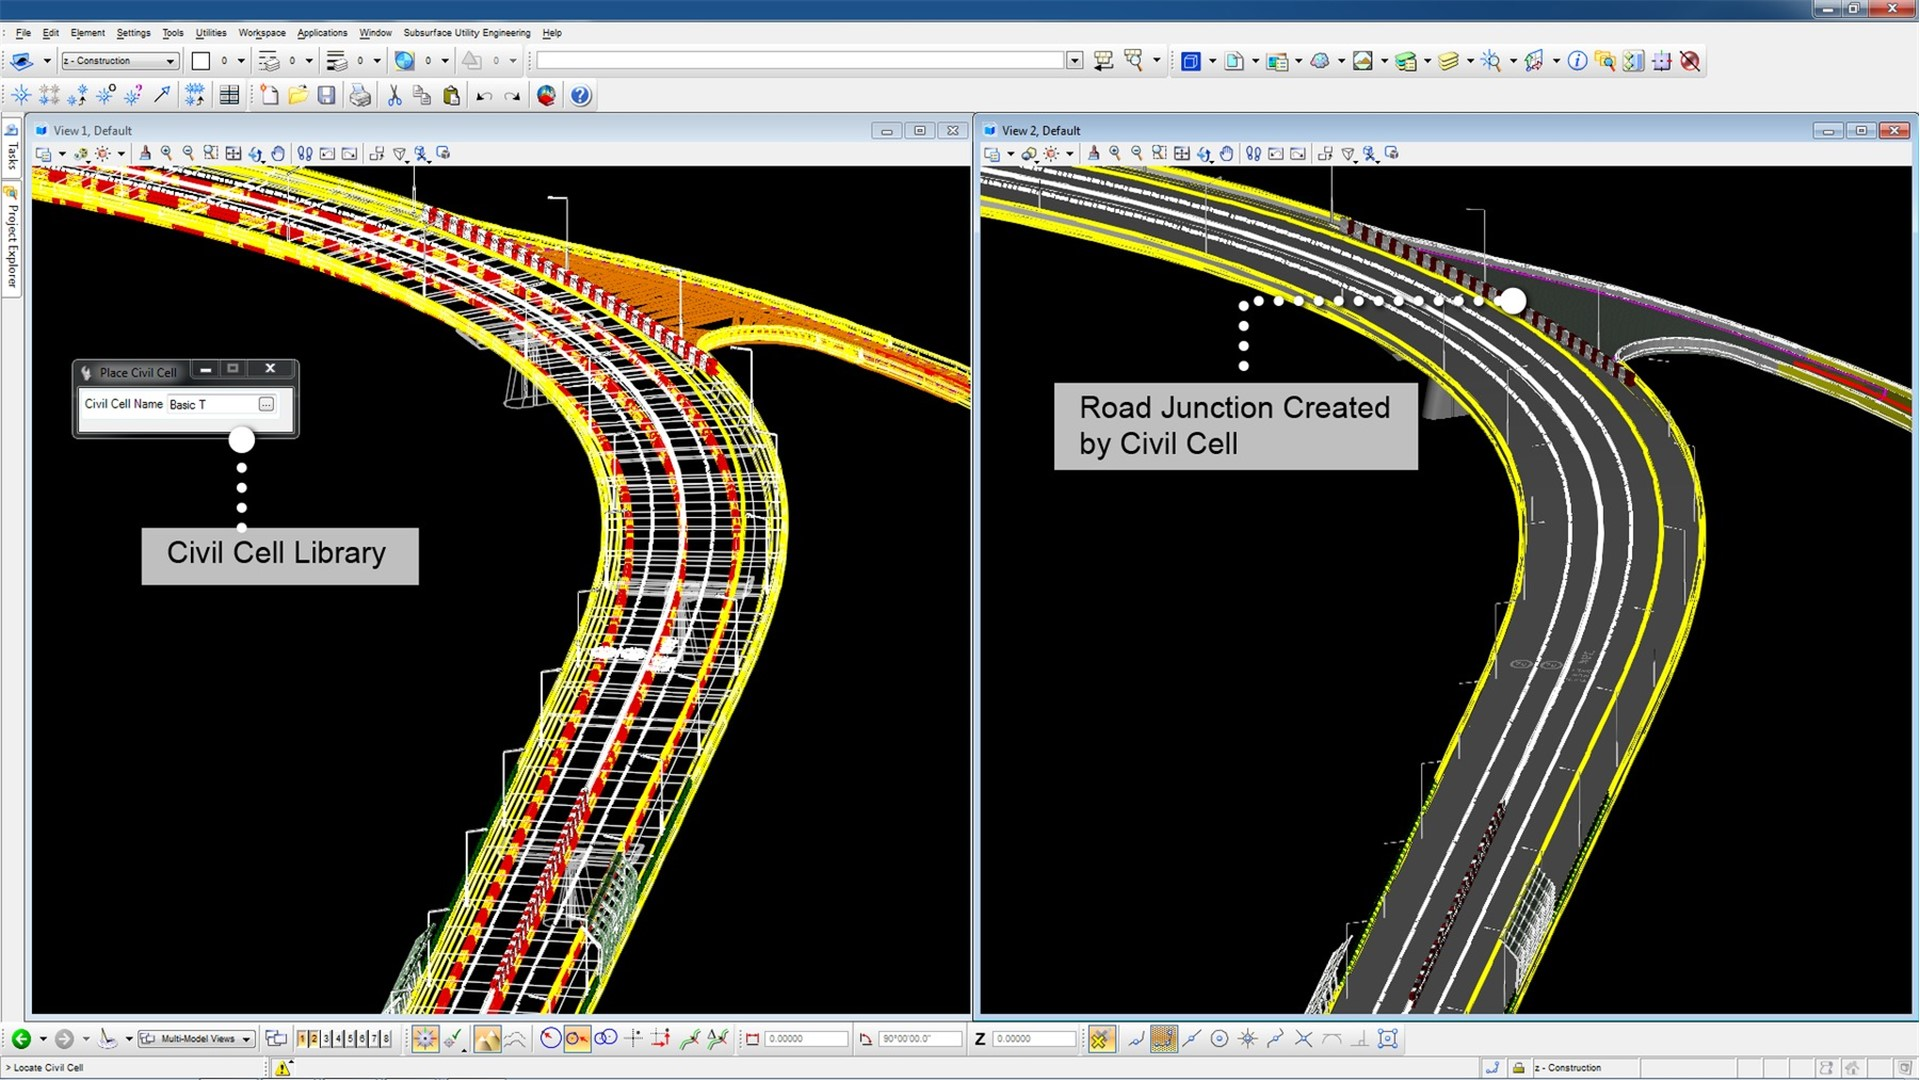 Drawing Lines In Microstation : Civil and transportation mapping software geopak ces